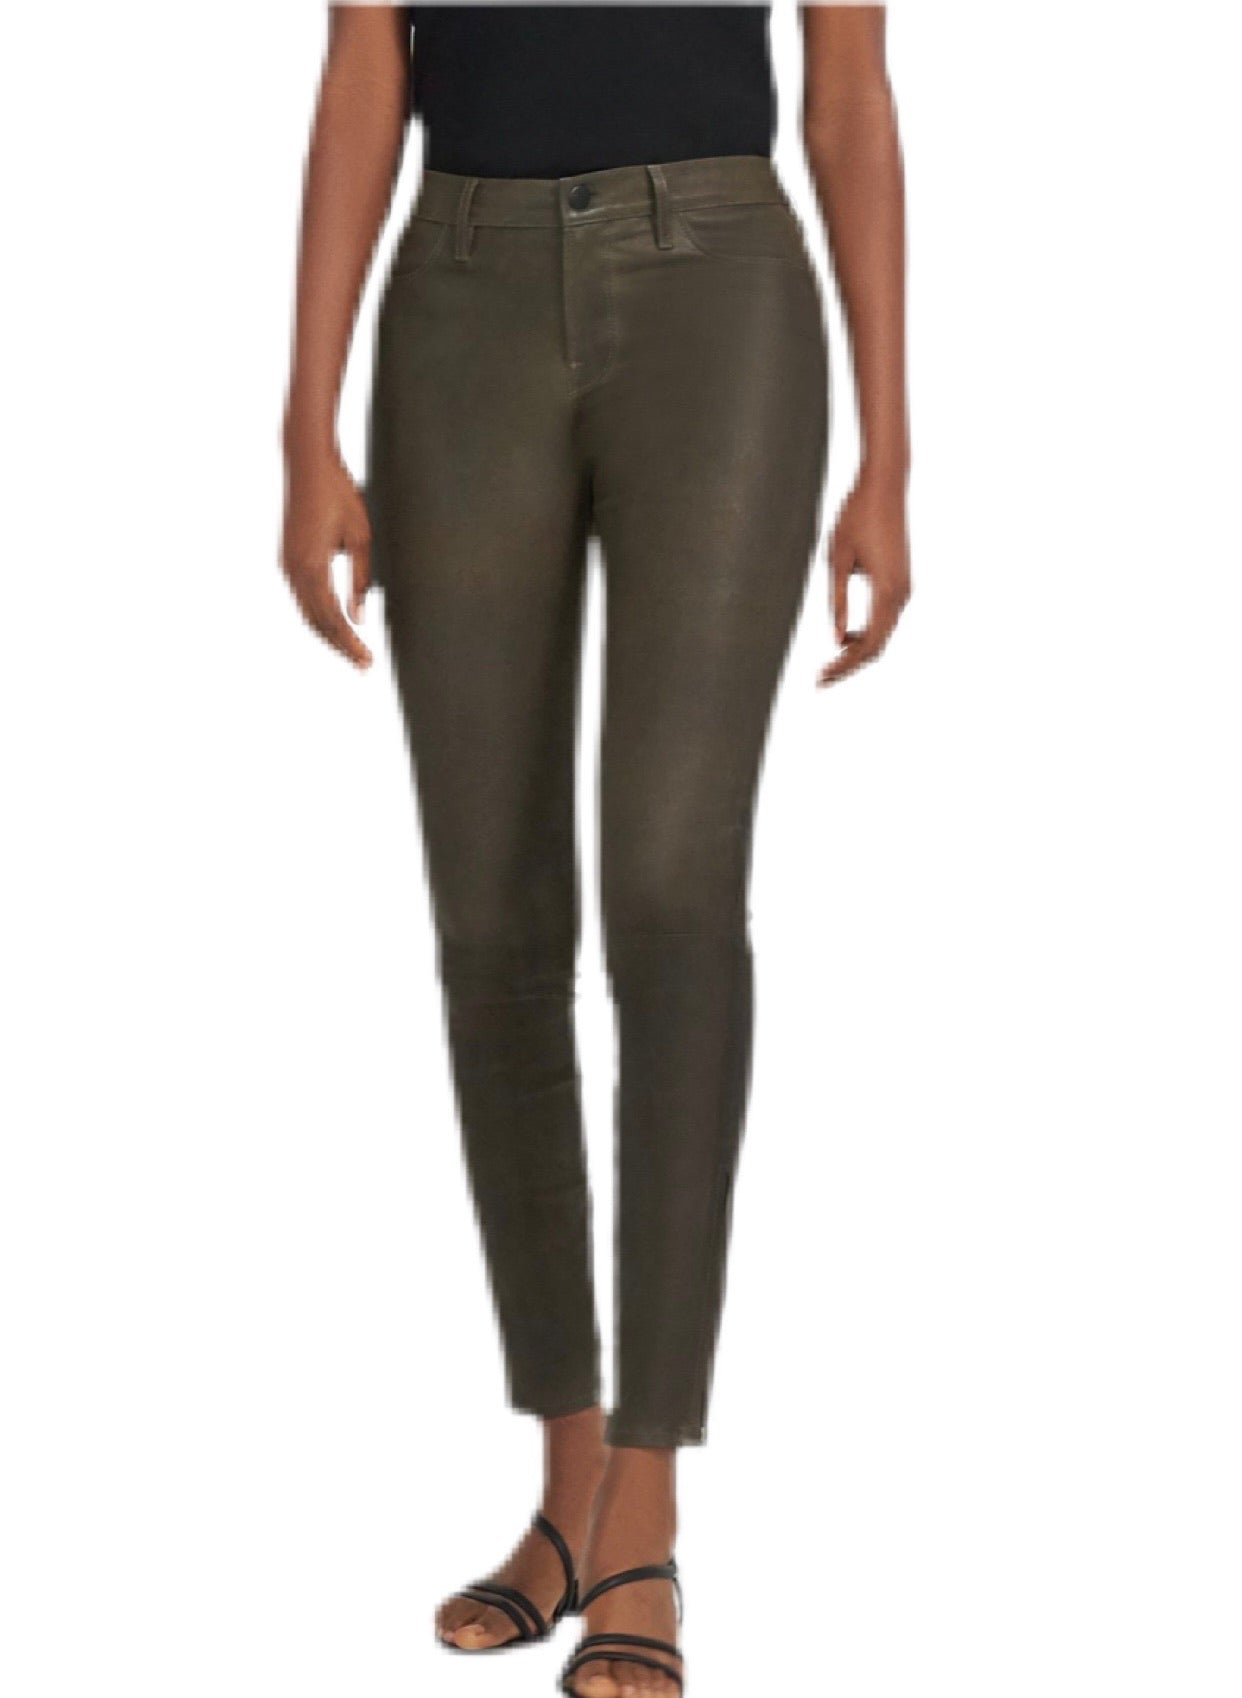 J Brand Mid Rise Skinny Leather Pant in Olive